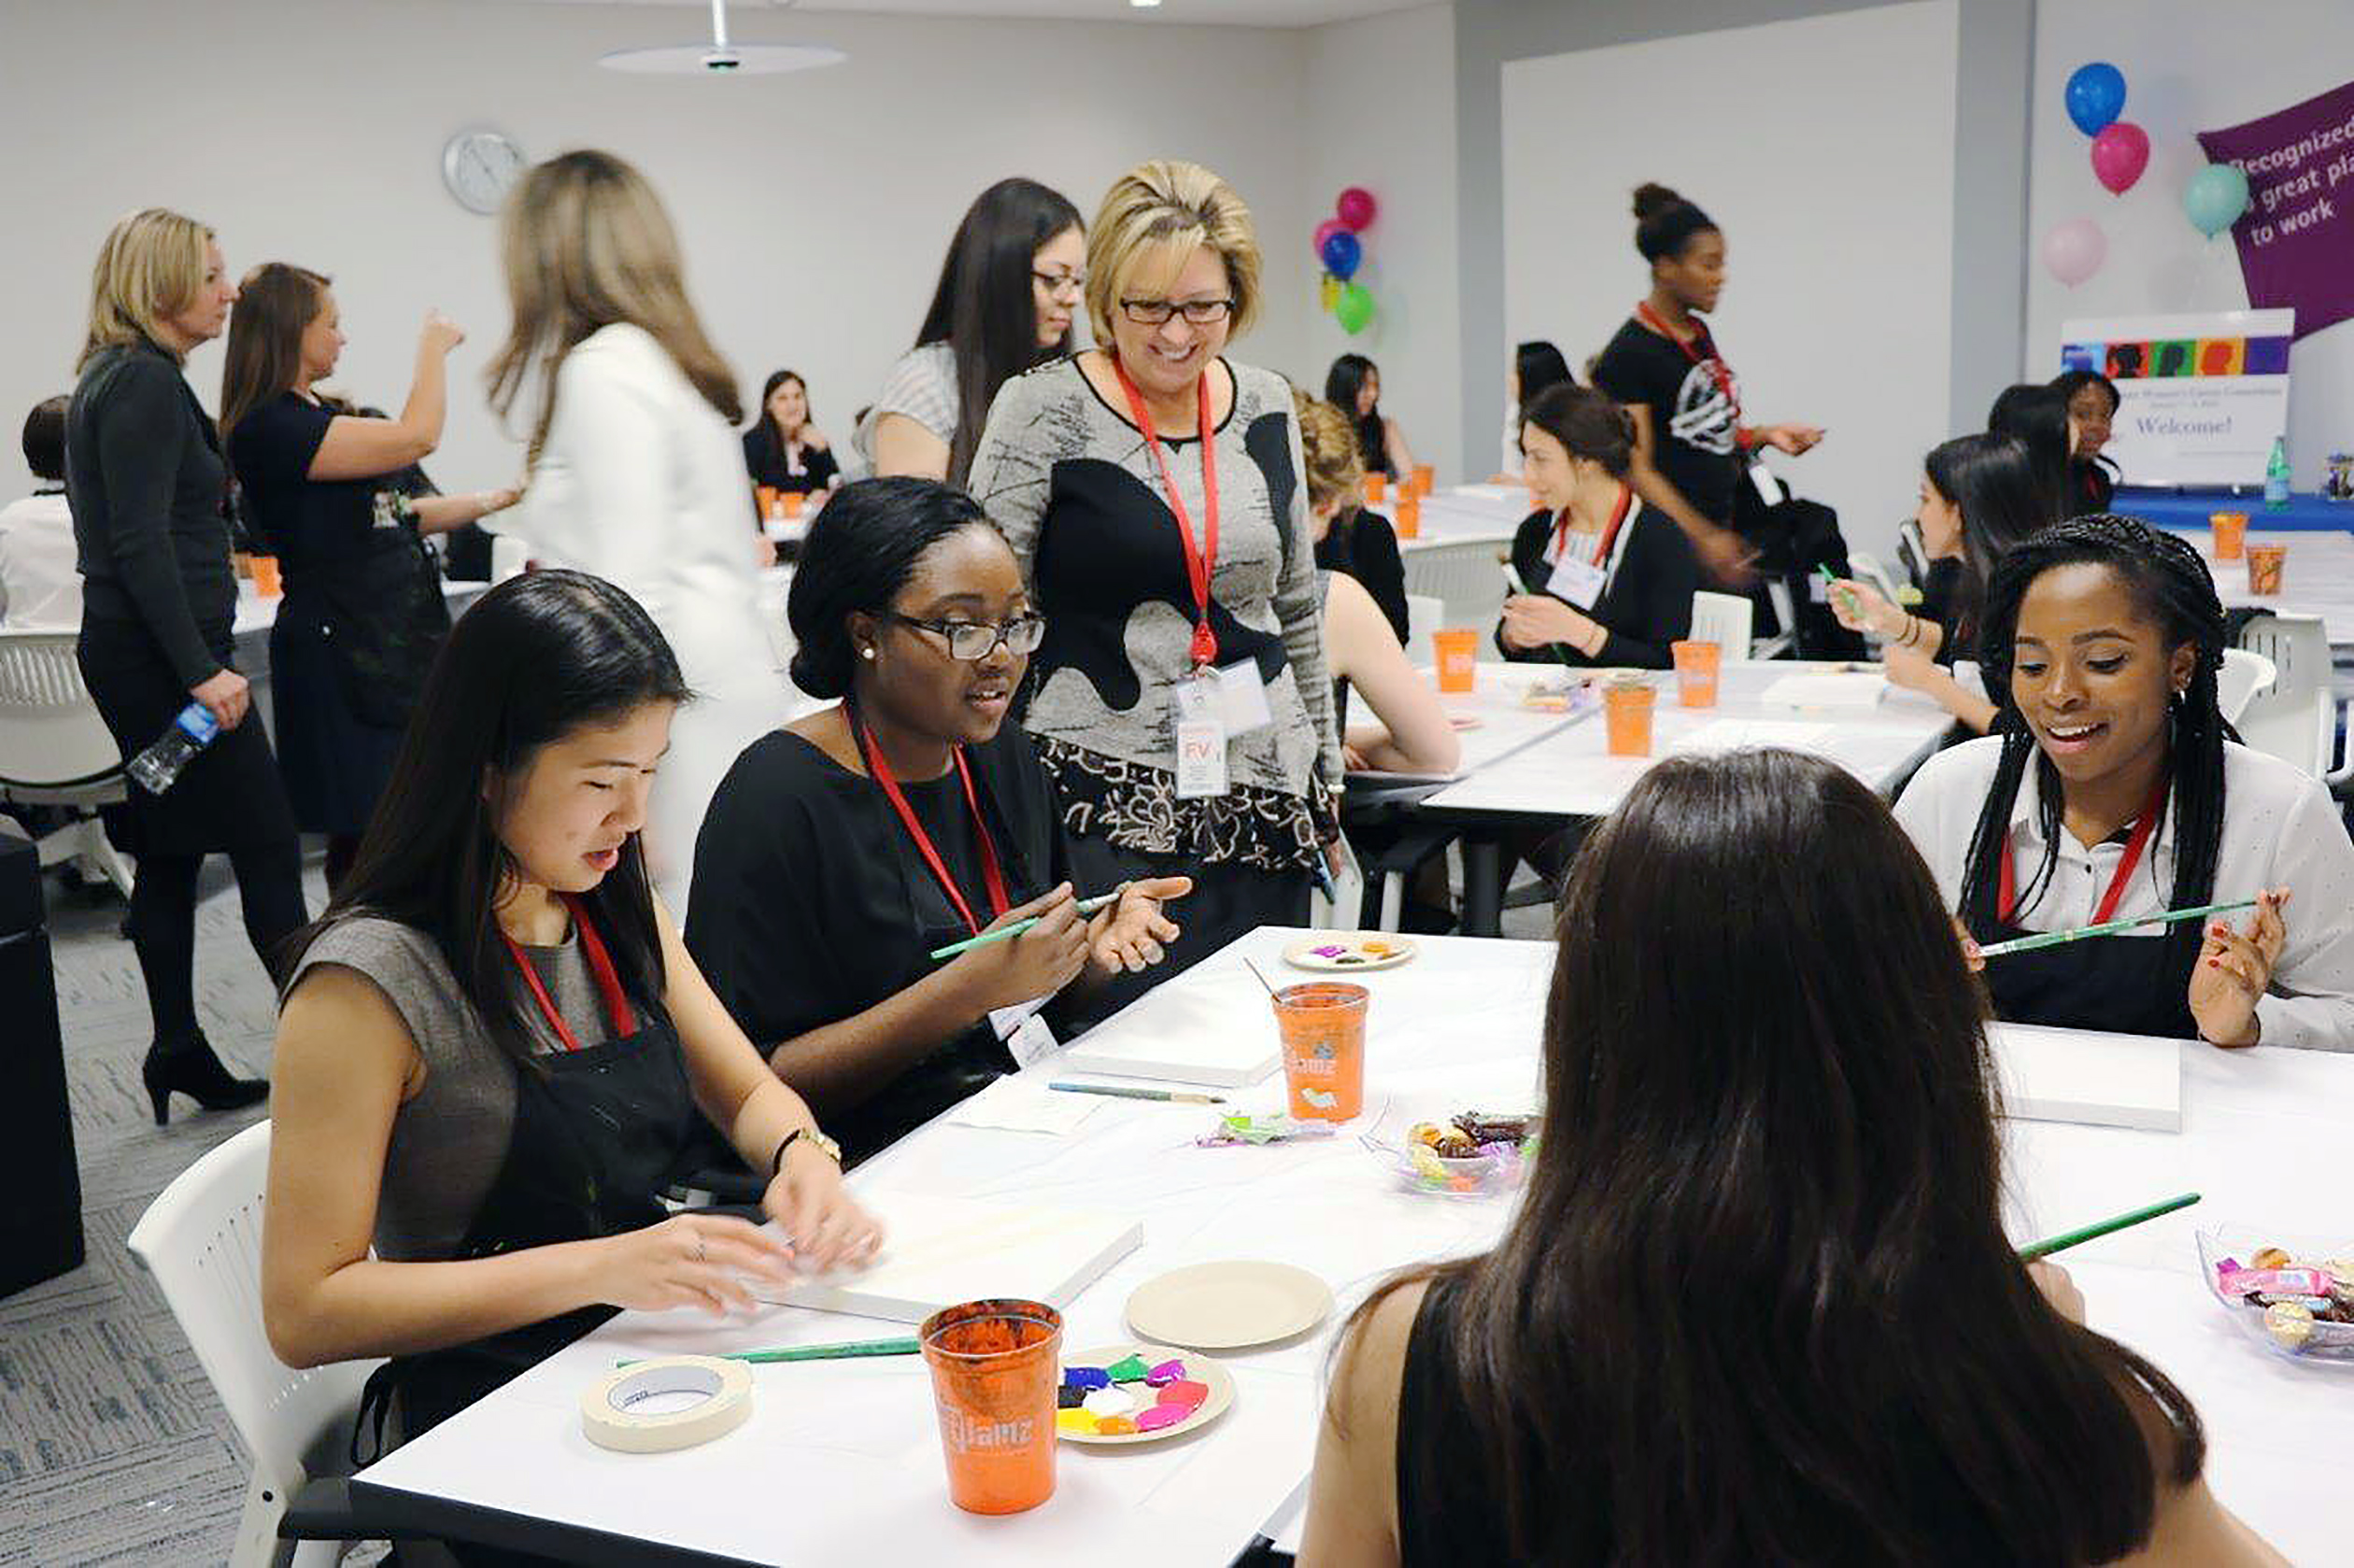 Accenture leaders and job candidates mingle at a workshop during its Women's Career Consortium in Washington, D.C.